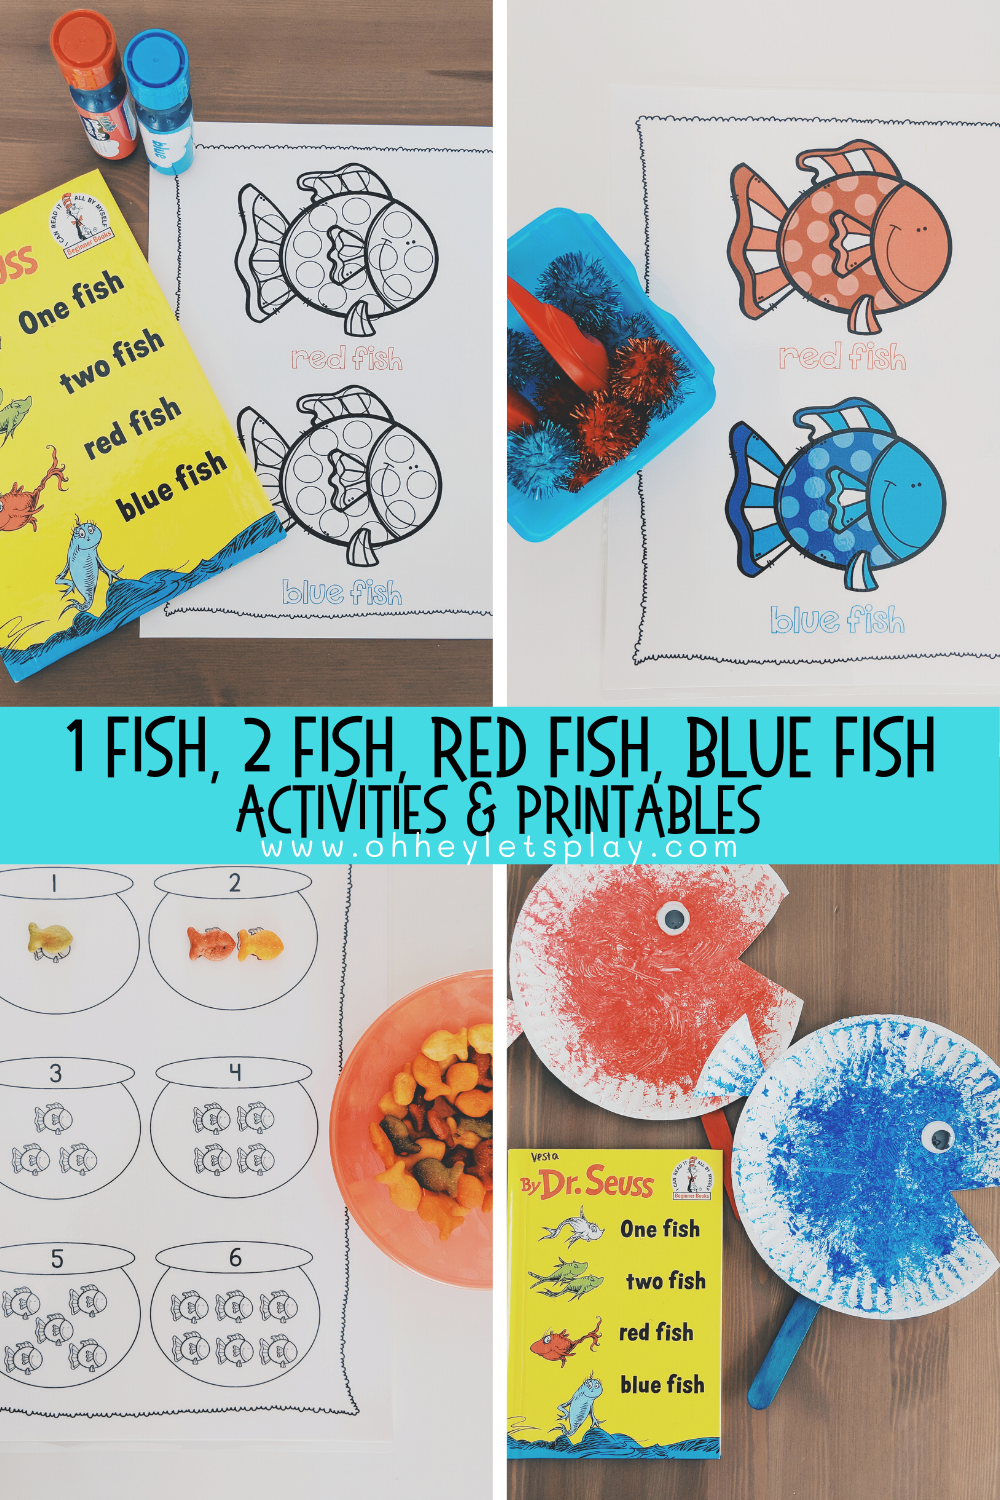 photograph relating to One Fish Two Fish Printable referred to as Crimson Fish, Blue Fish Dr. Seuss Routines Printables